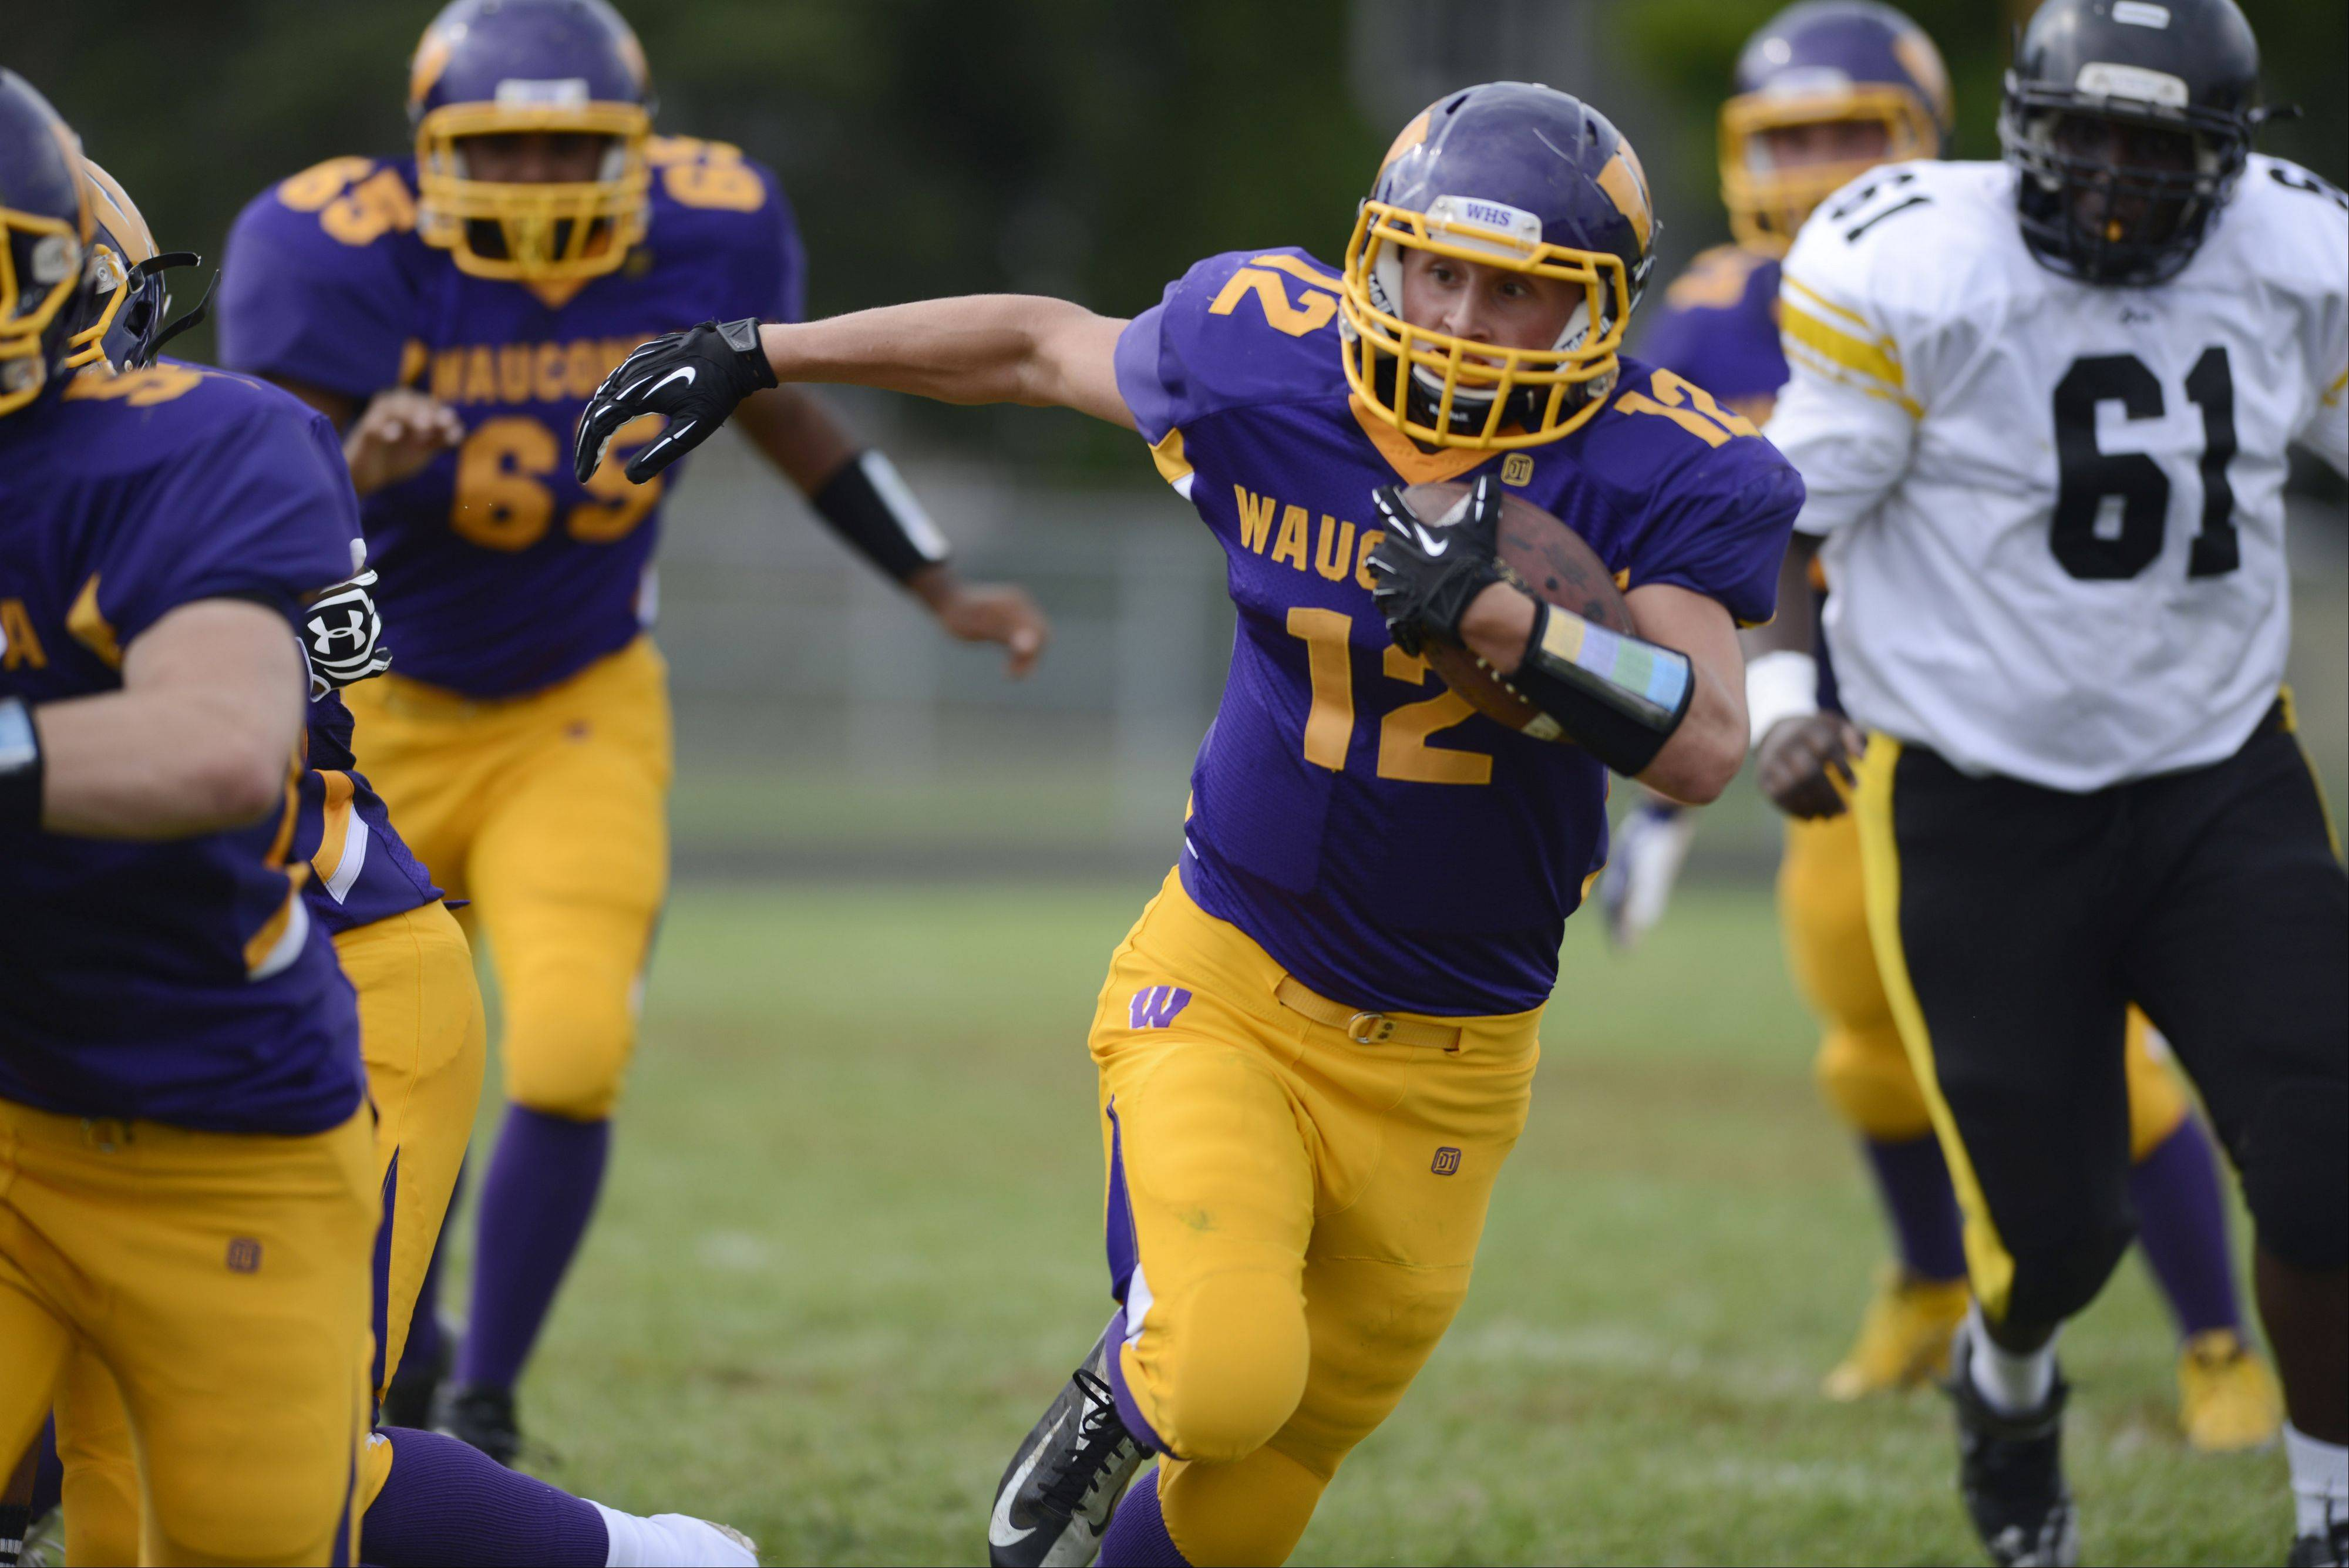 Wauconda�s Alex Payne carries the ball during Saturday�s game against Orr.